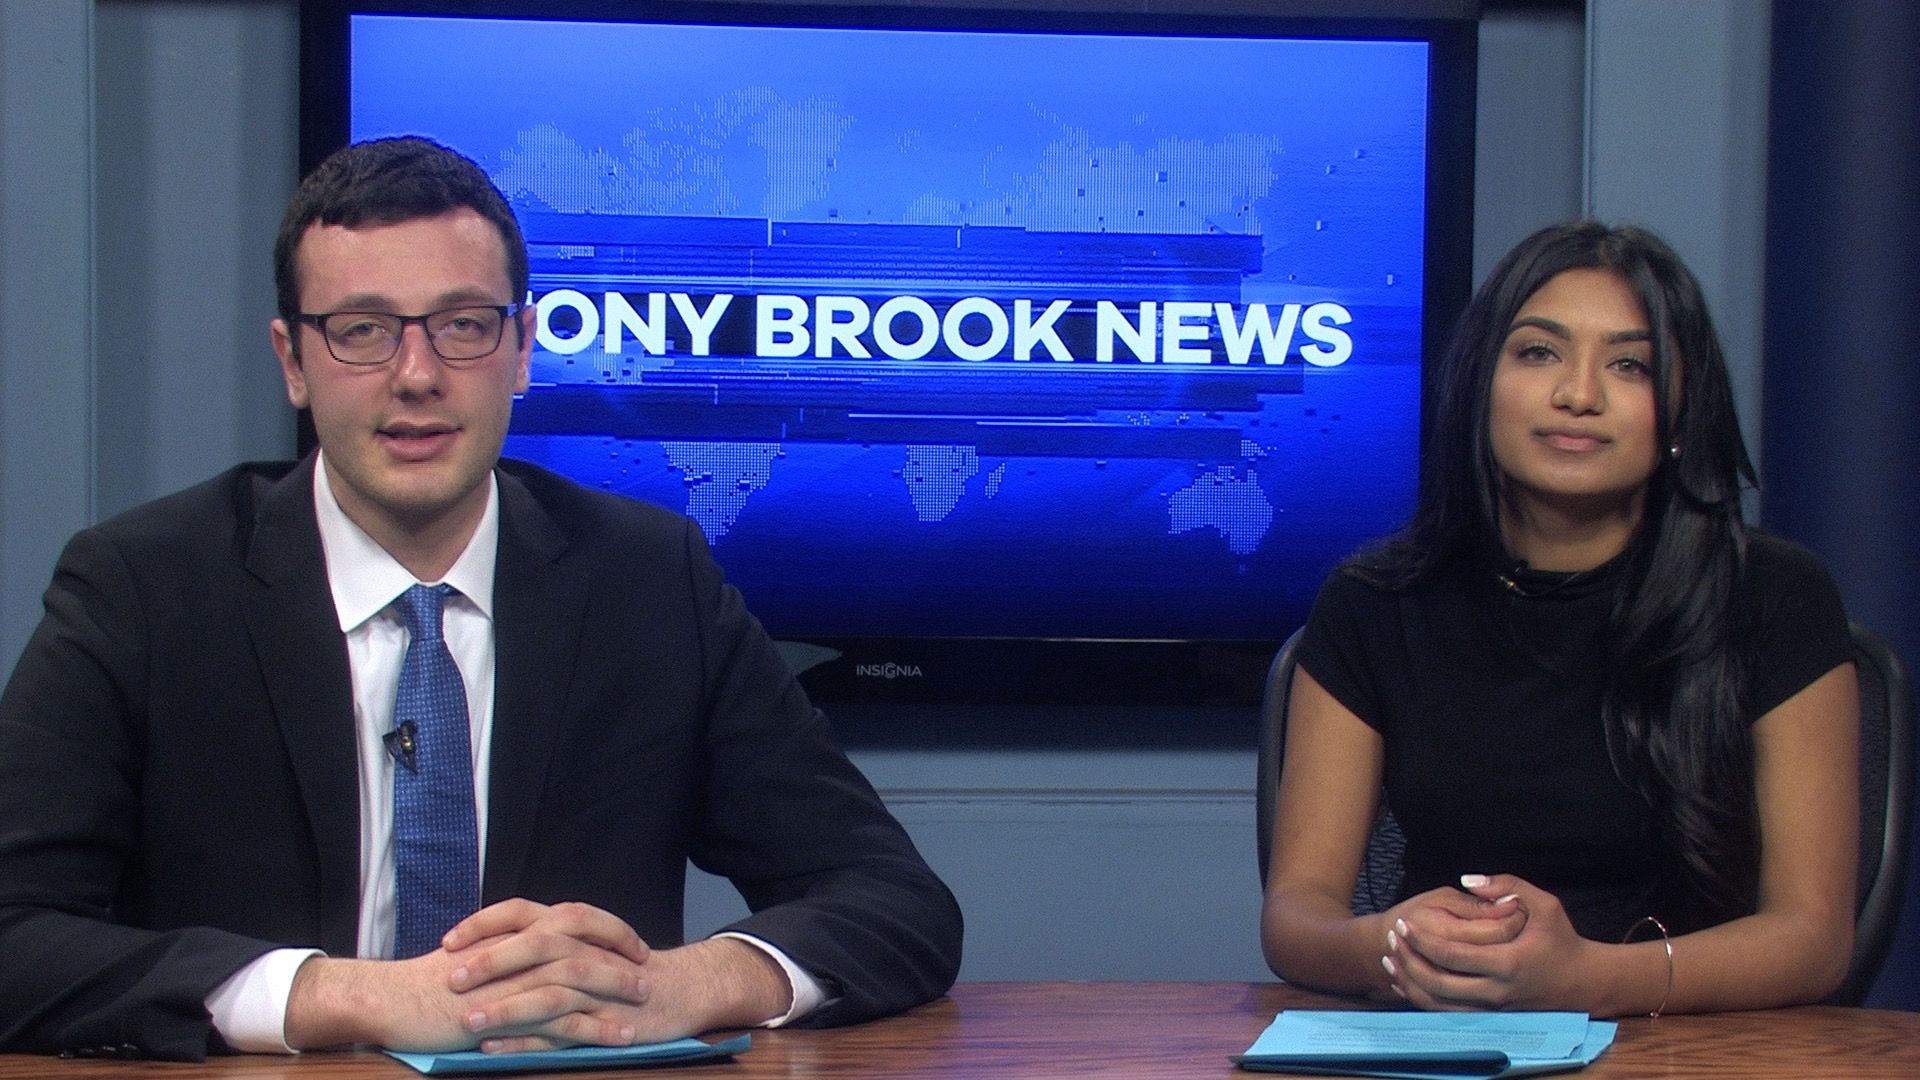 Stony Brook Newsbreak – March 12, 2020